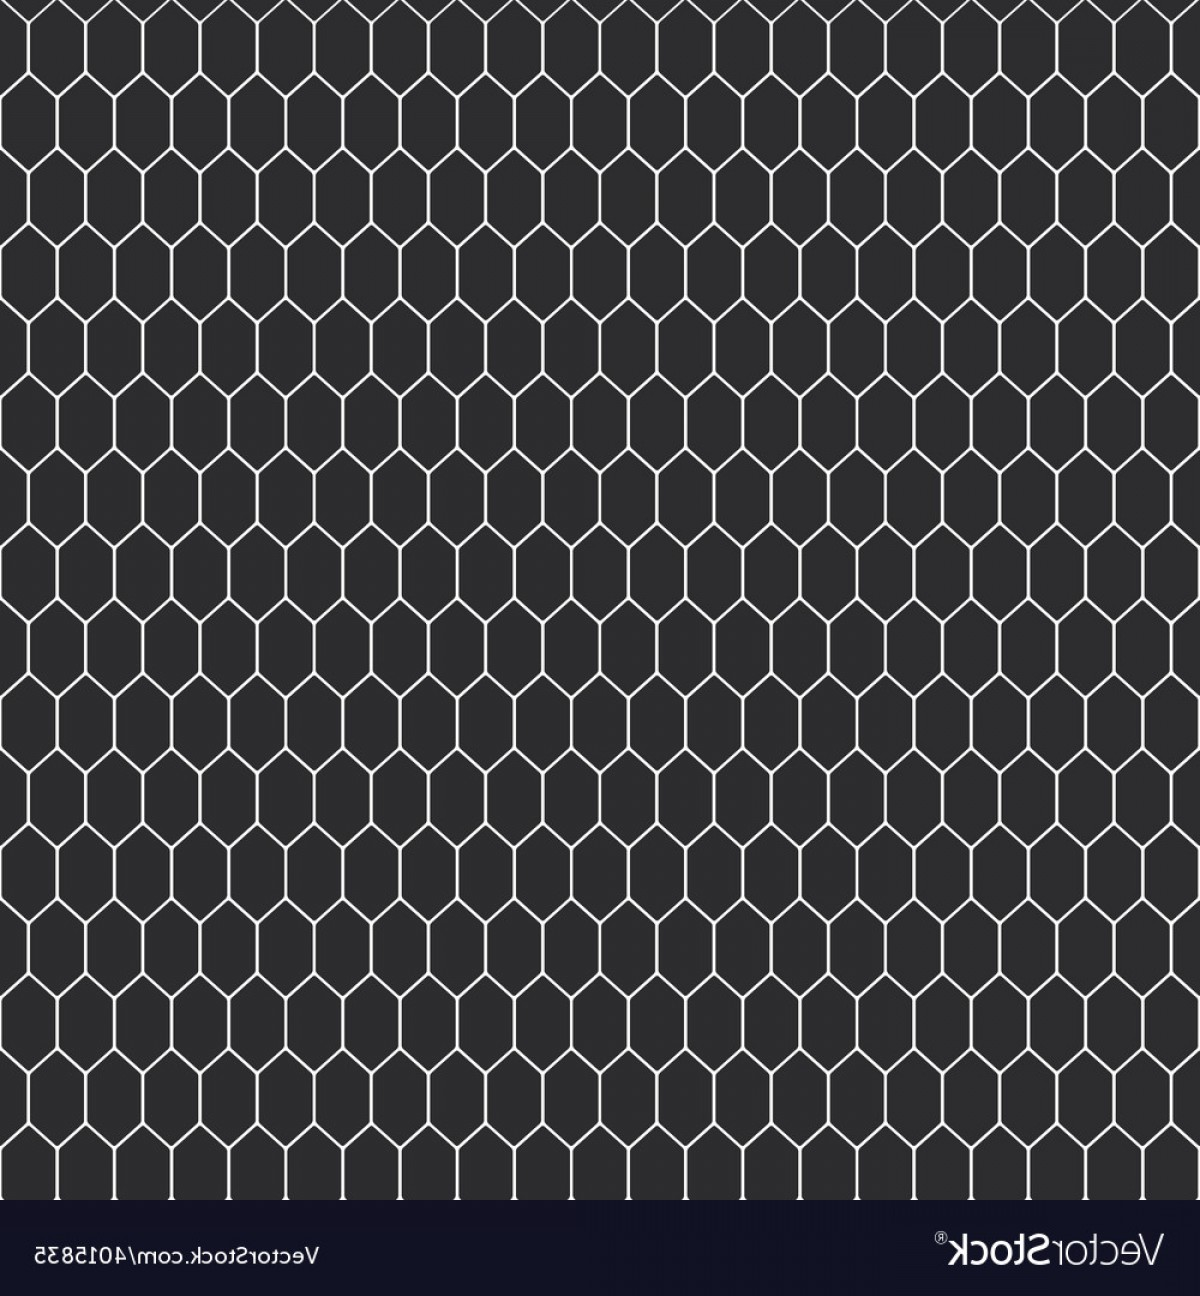 Alligator Skin Texture Vector: Snake Skin Texture Seamless Pattern Black On White Vector